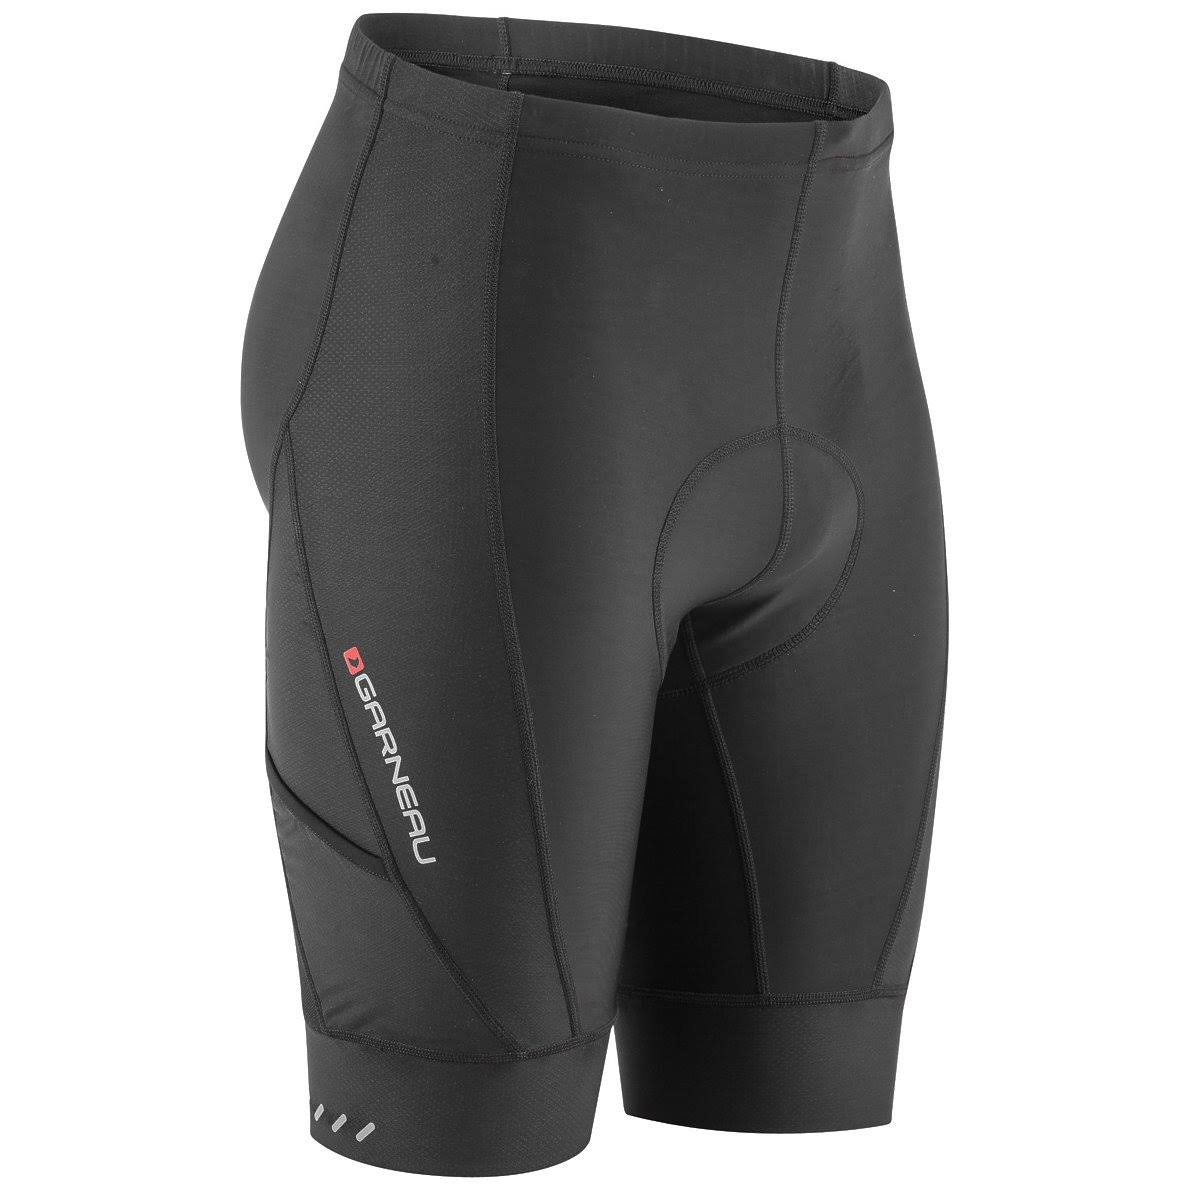 Louis Garneau Optimum Men's Short - Black, Medium